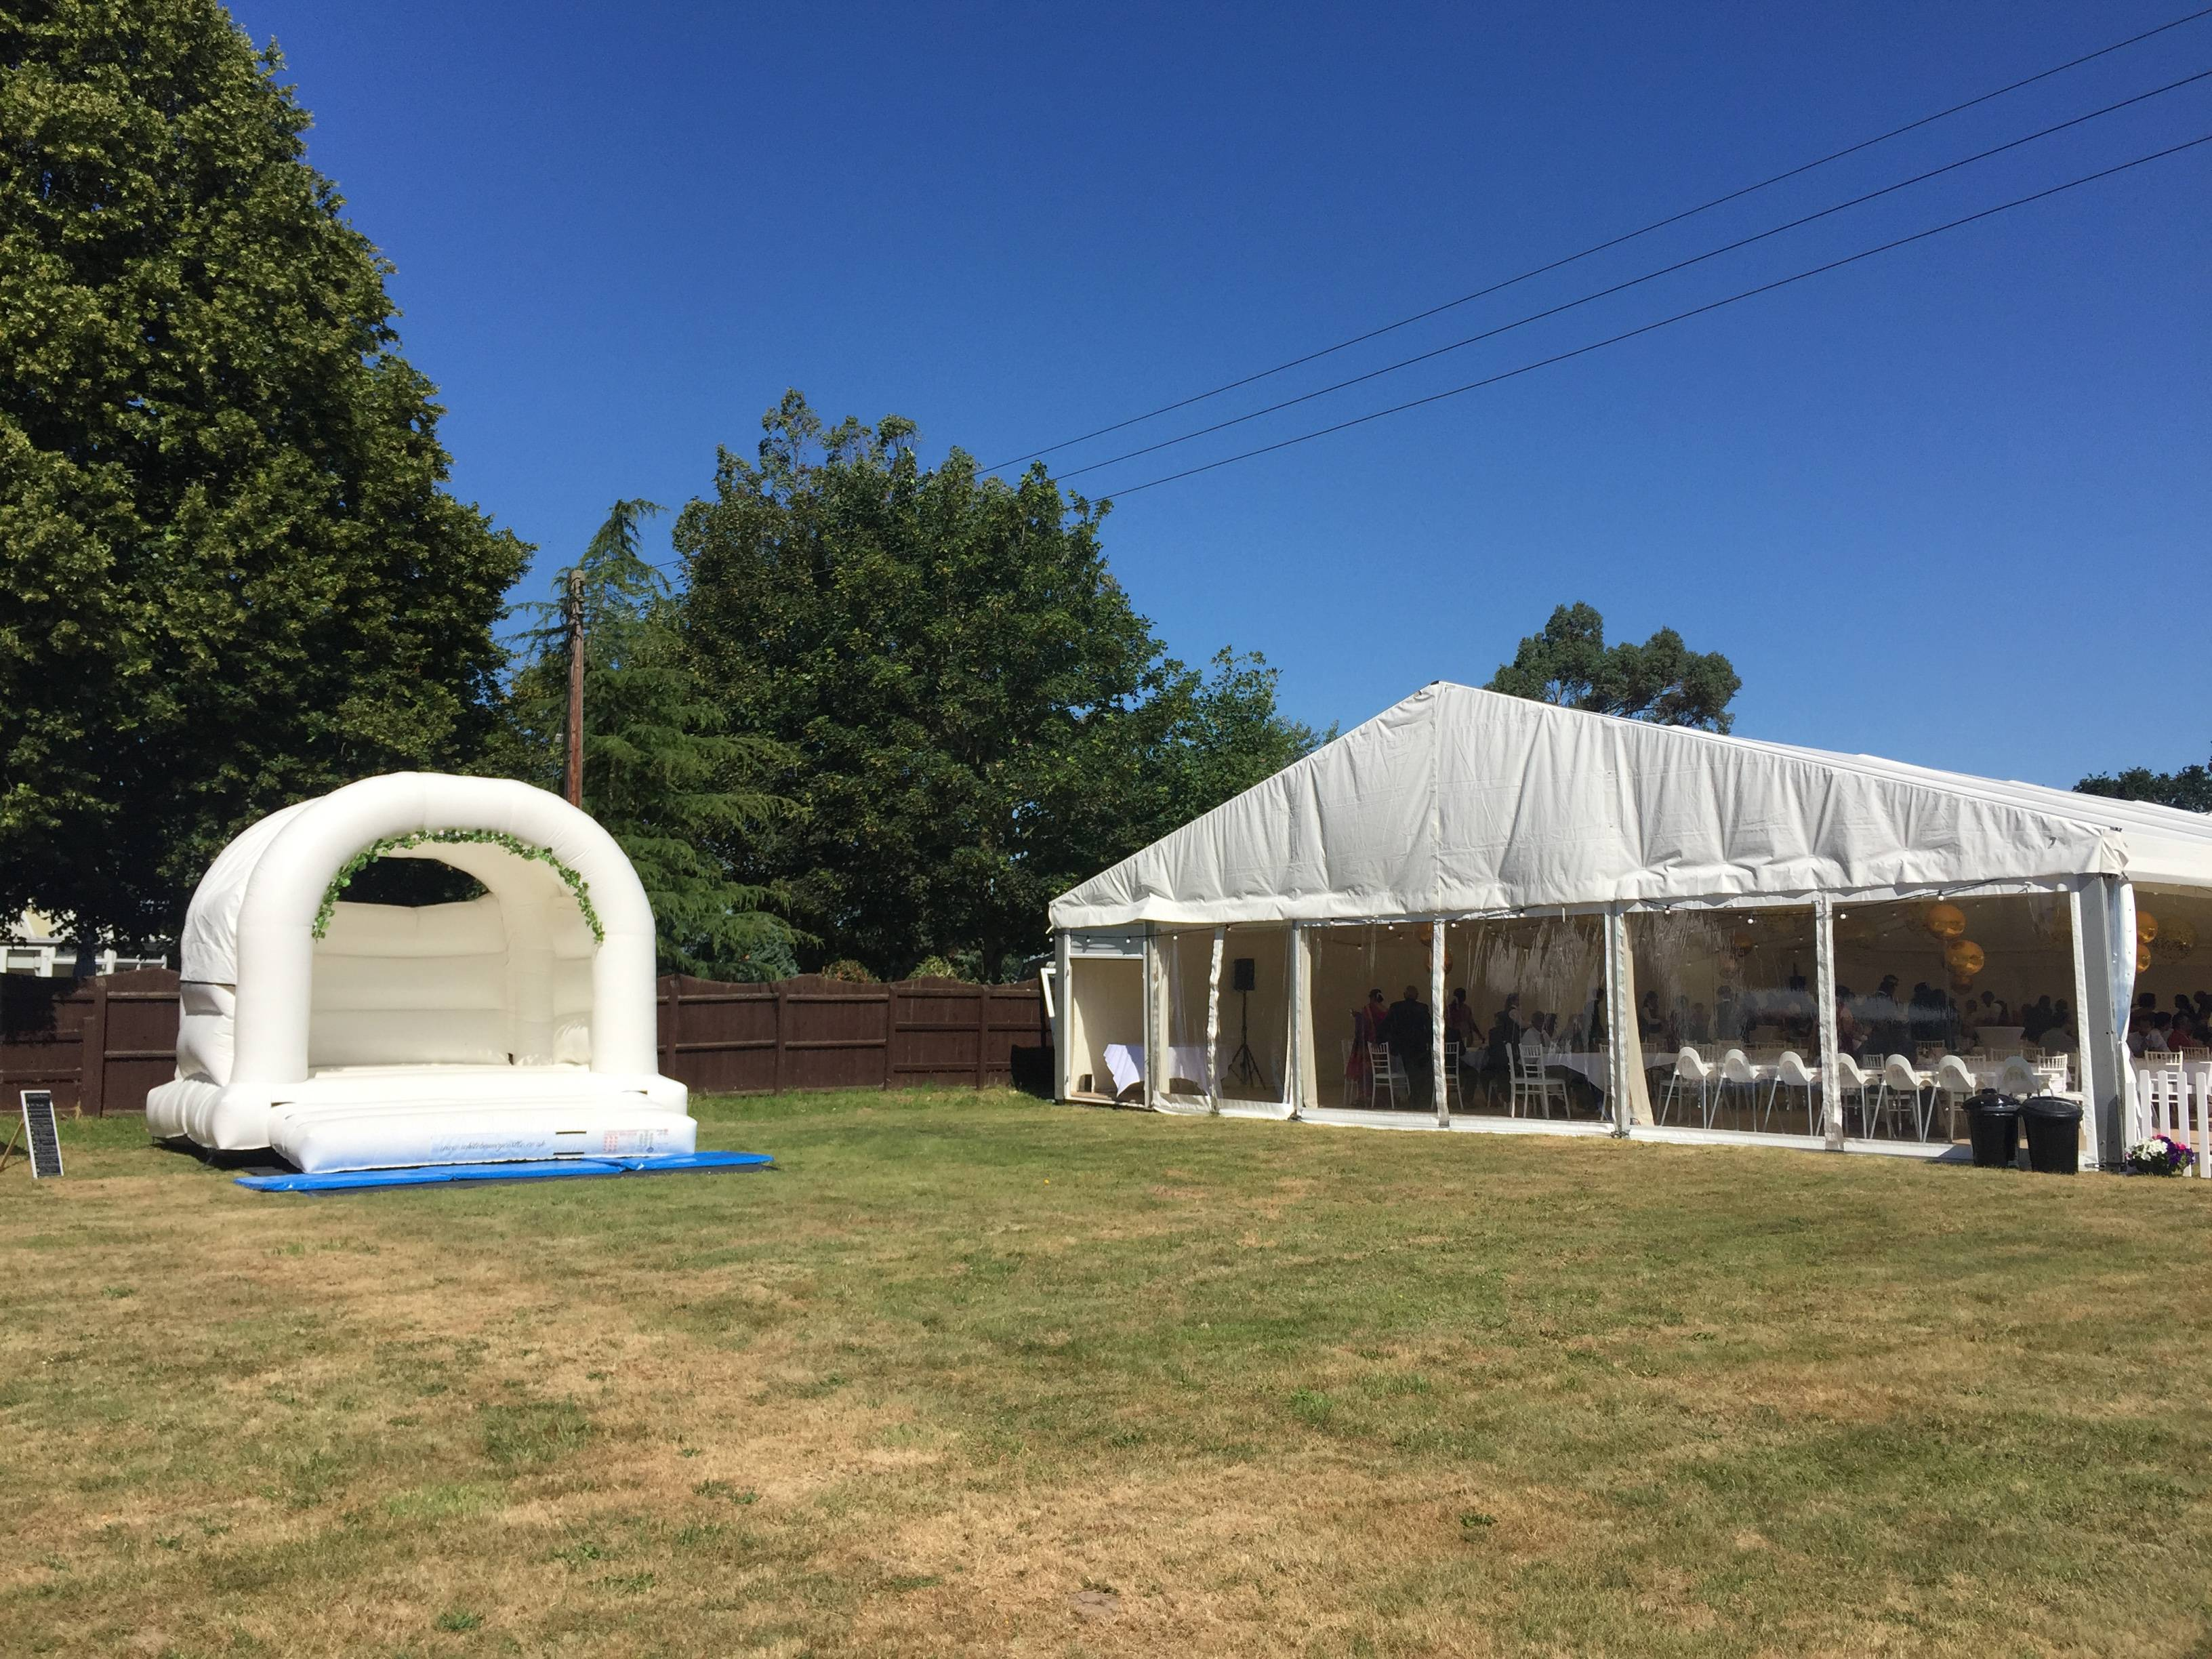 15x15ft white bouncy castle with flower arch